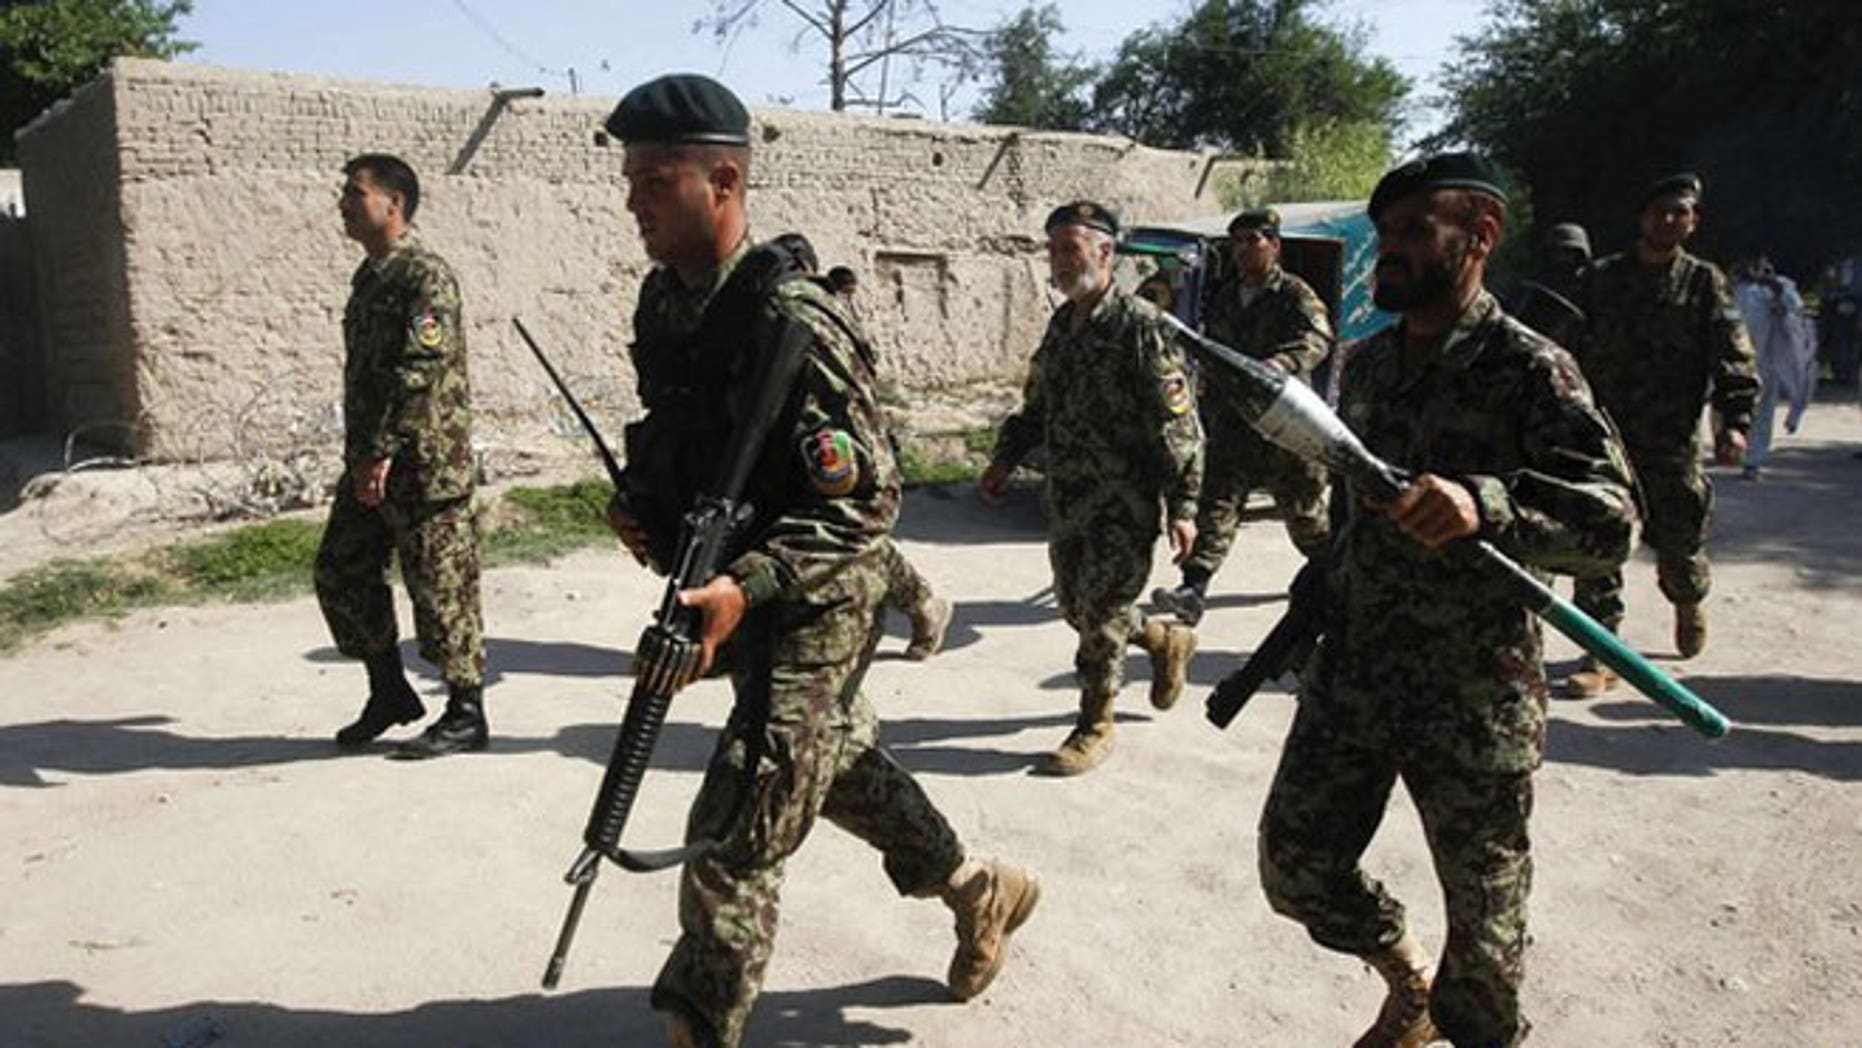 April 15, 2012: Afghan National Army soldiers arrive at the Provincial Reconstruction Team (PRT) after gunmen launched a coordinated attack in Jalalabad province.